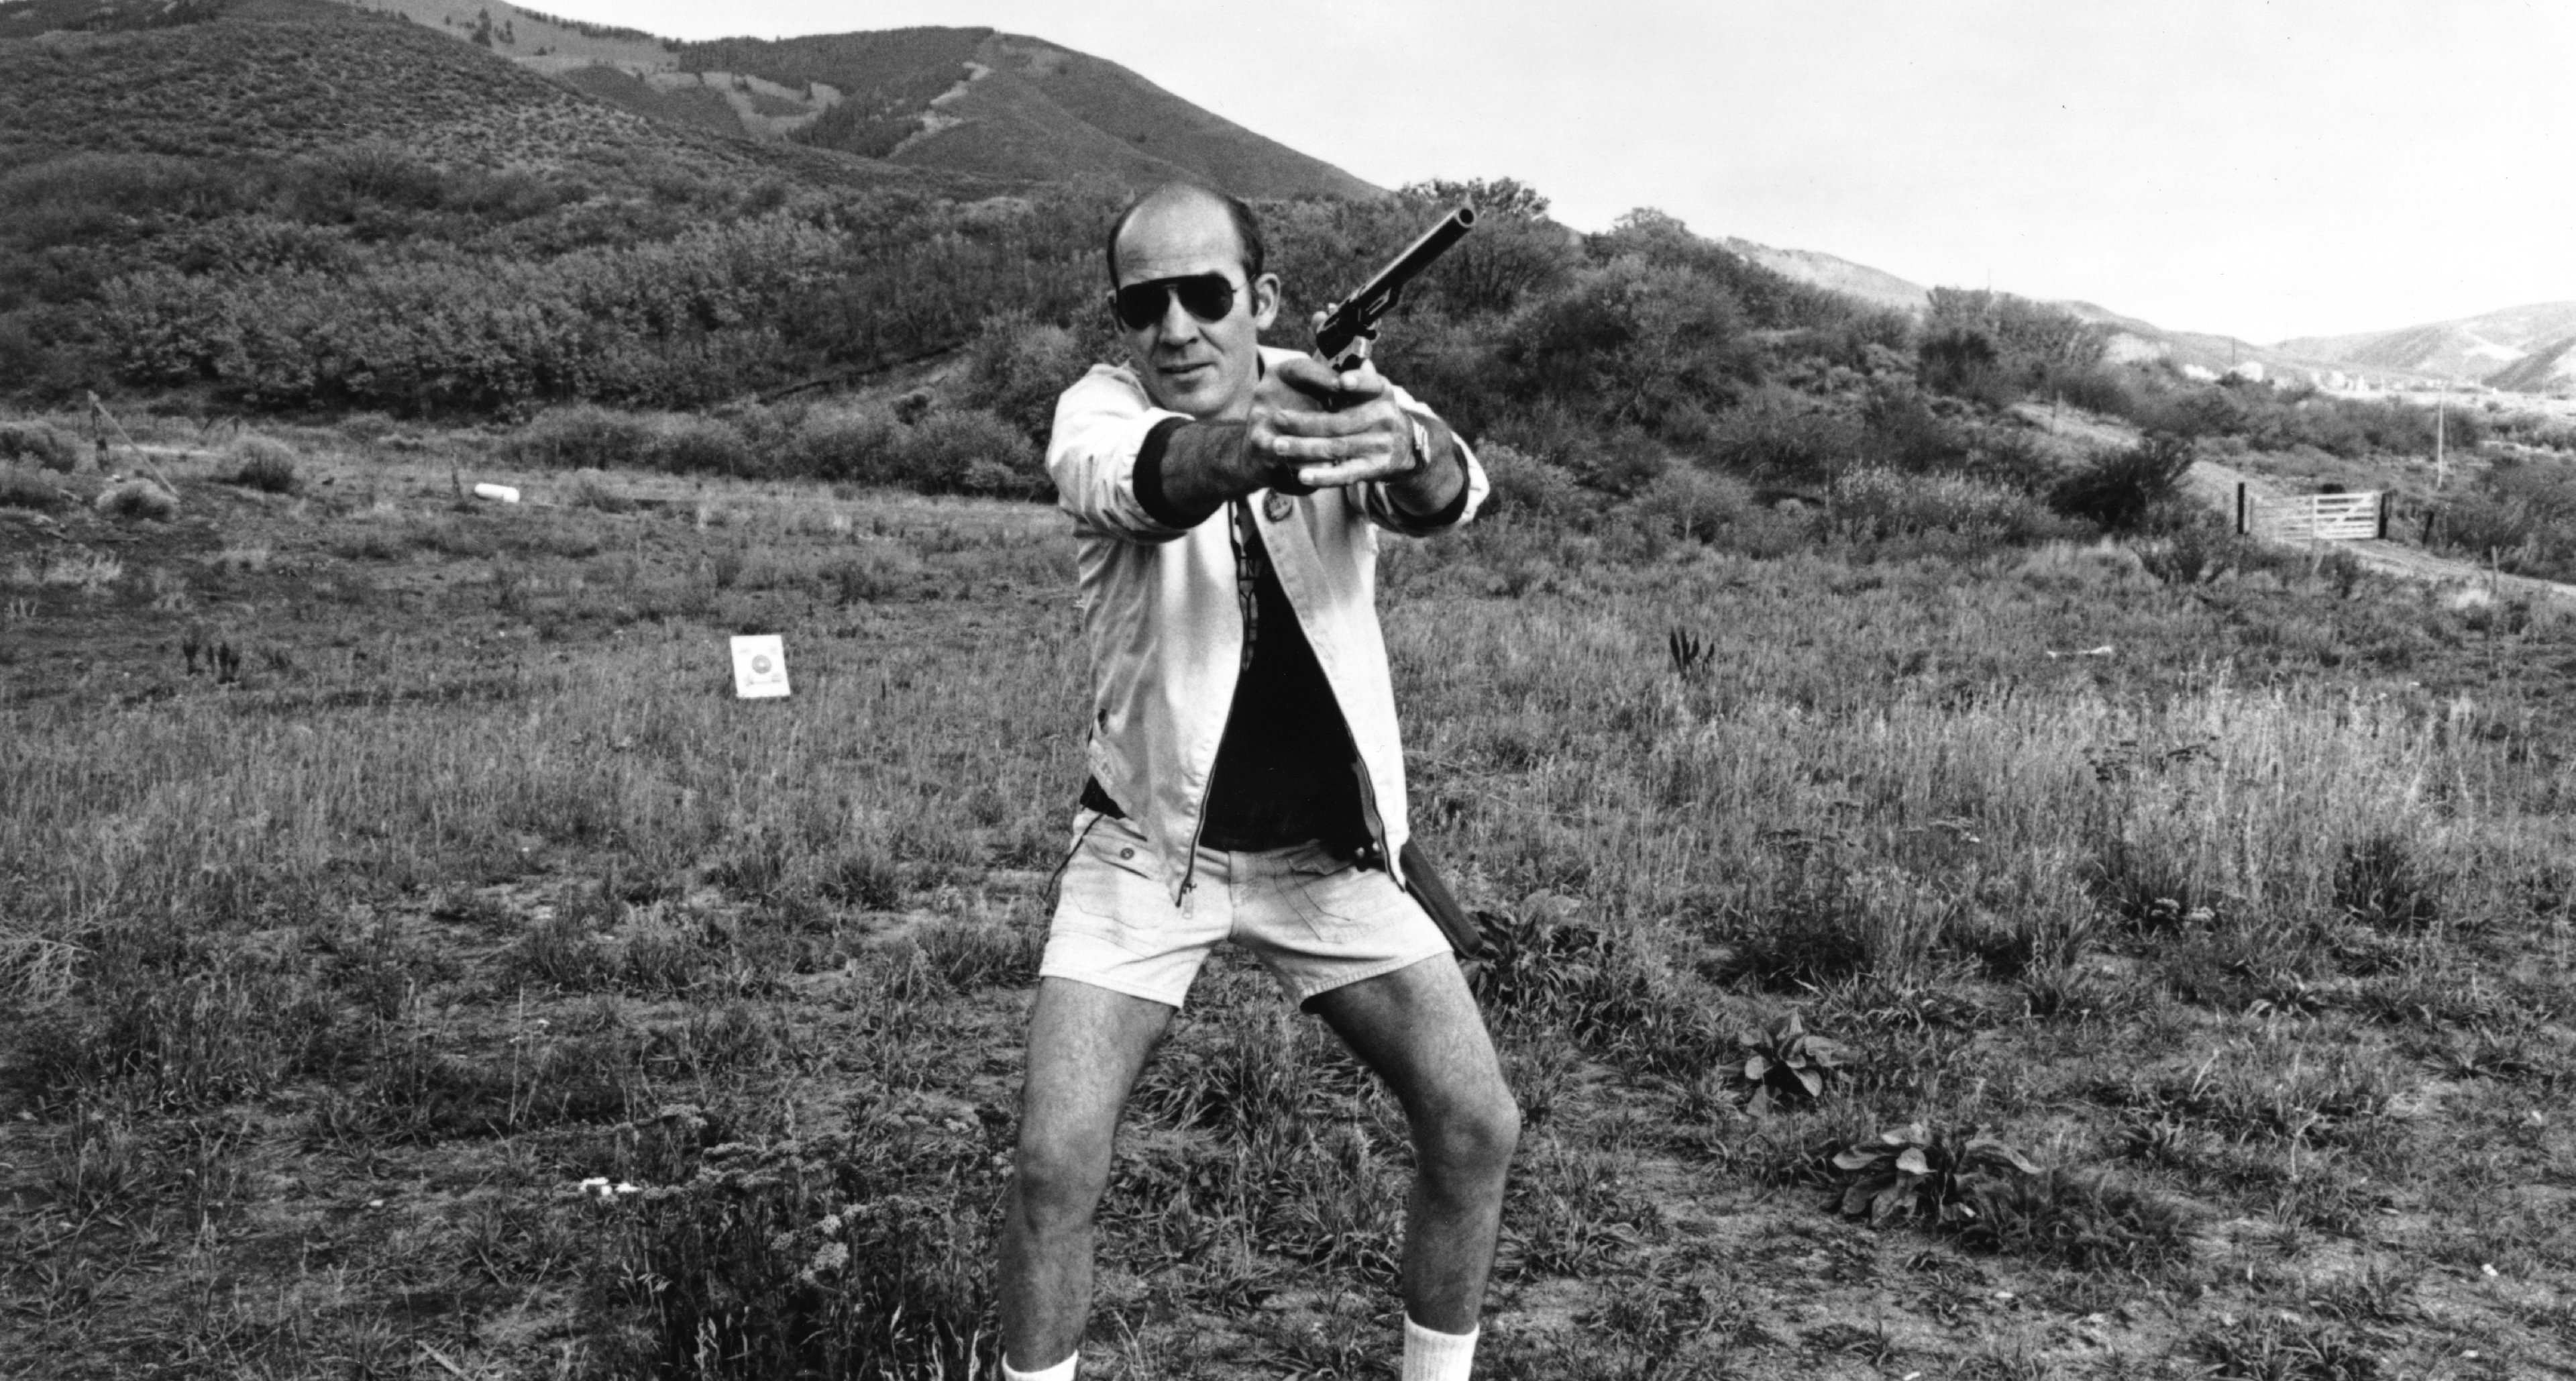 Gonzo Journalist Hunter S. Thompson giving it a shot around 1976.